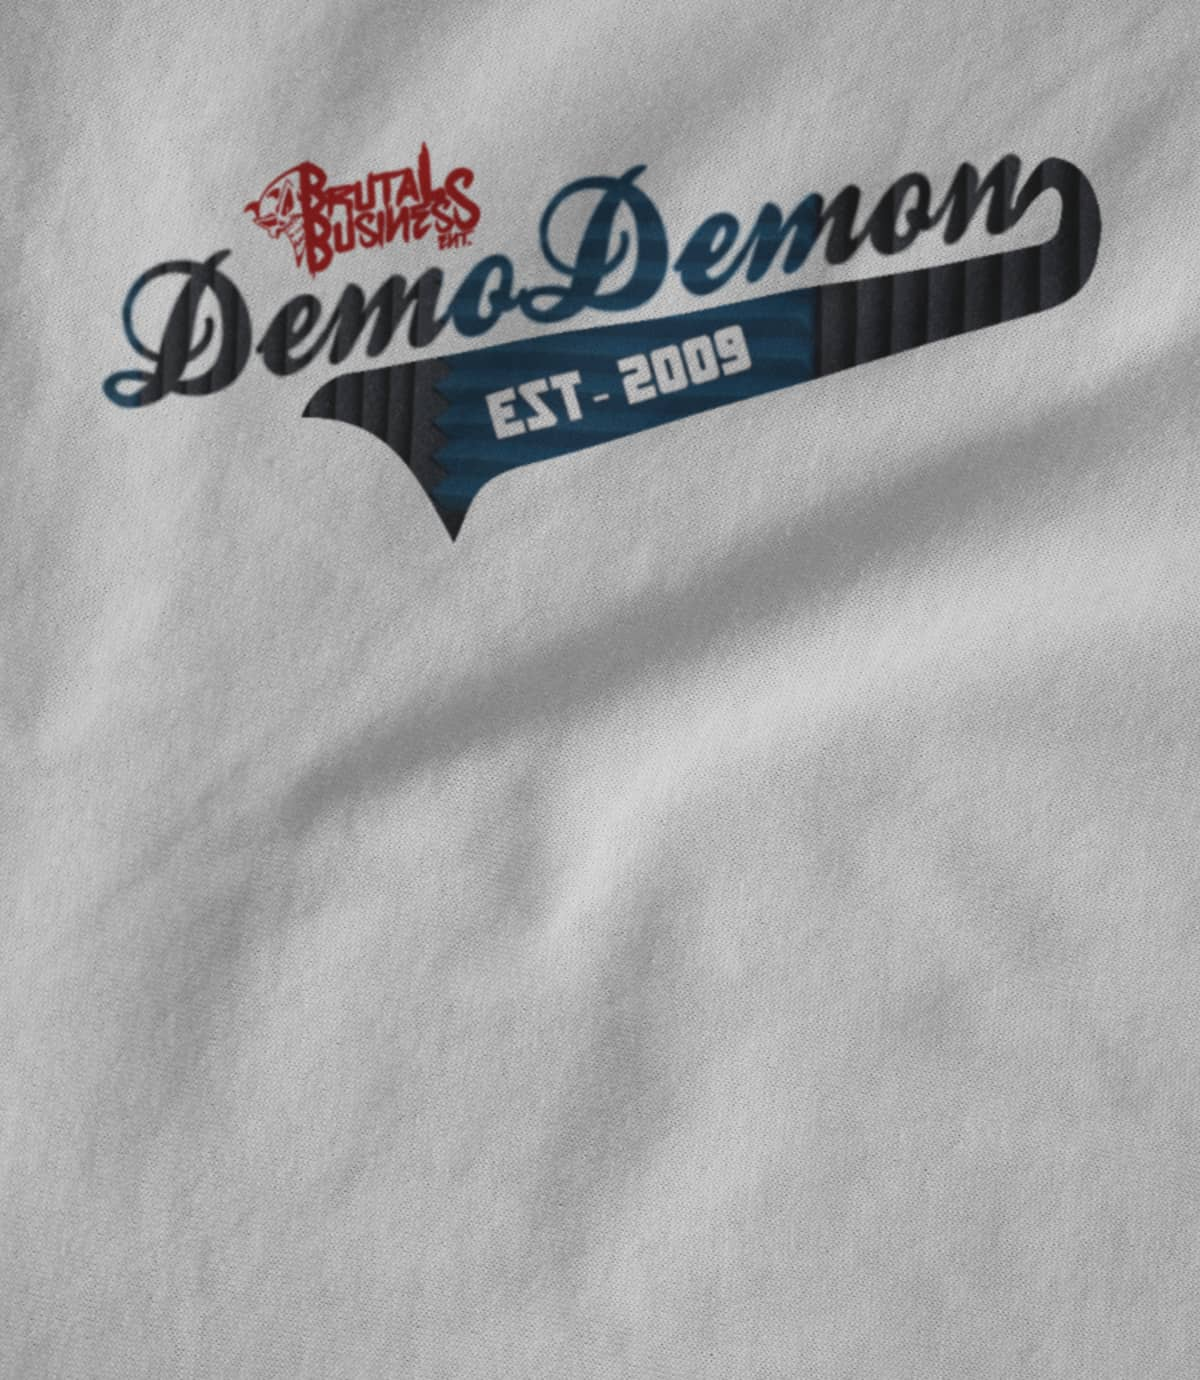 Demo Demon